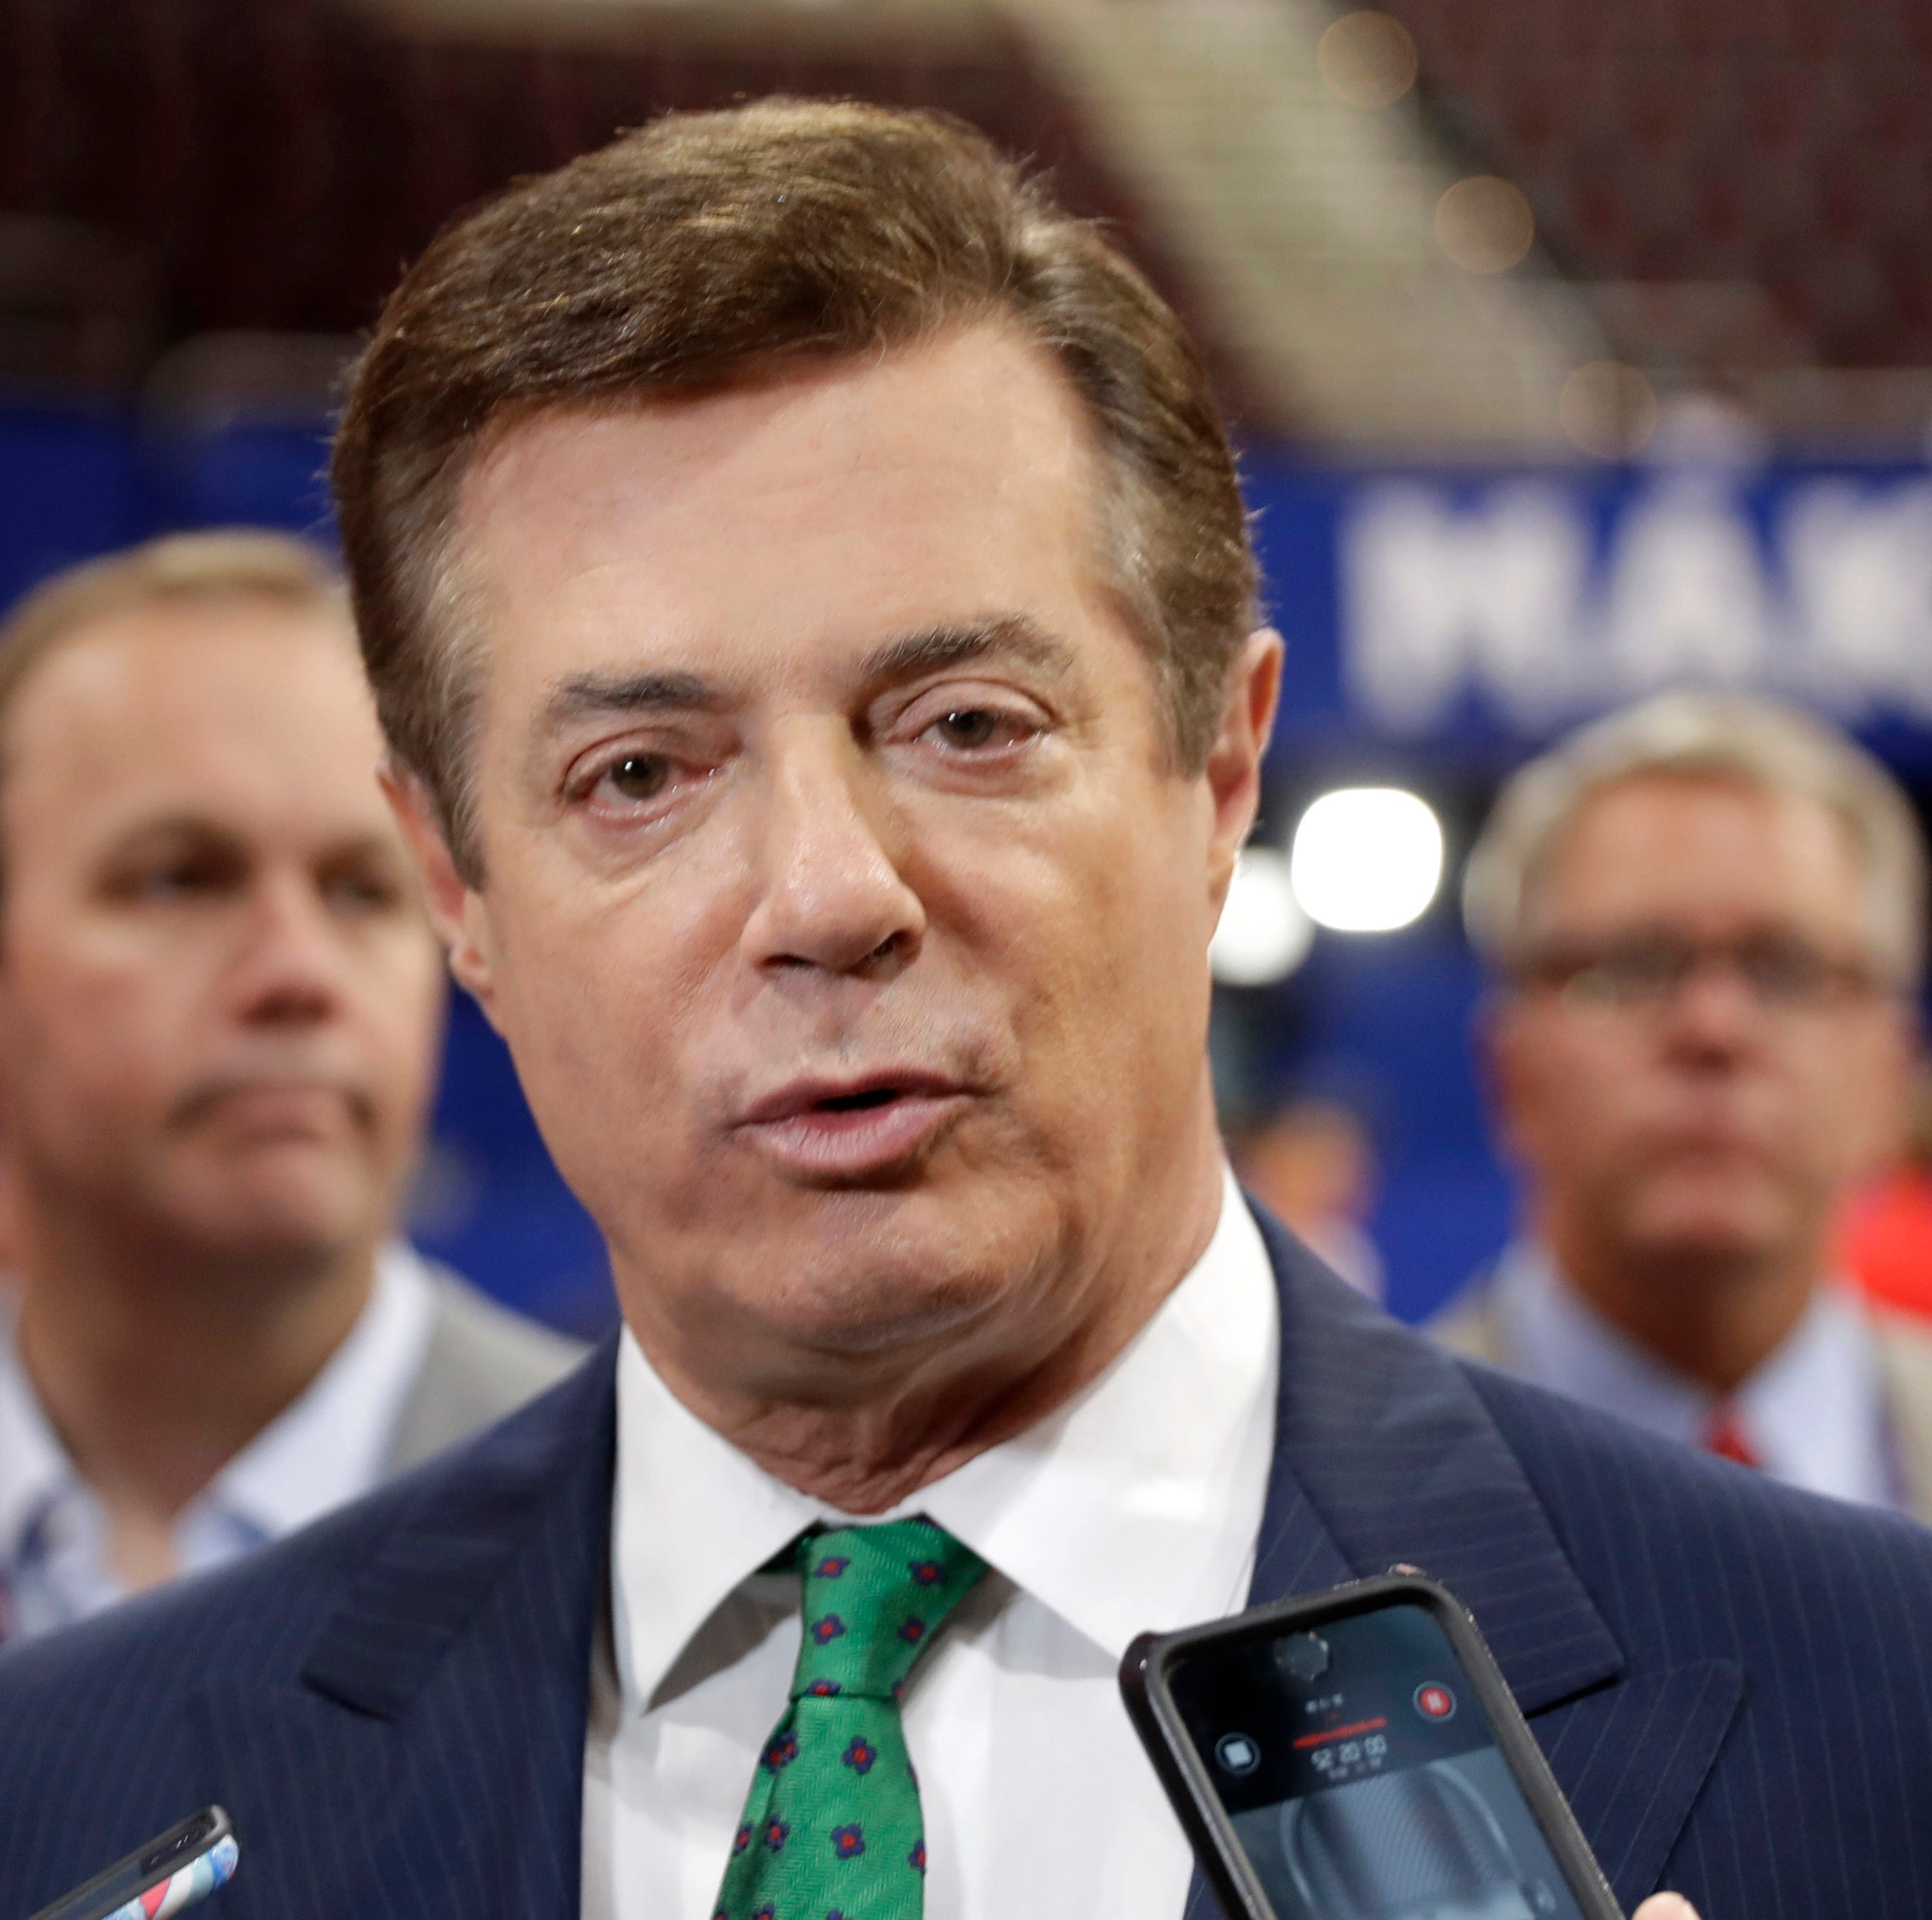 Wisconsin tagged as key state by Trump campaign manager Paul Manafort in 2016 briefing with Russian